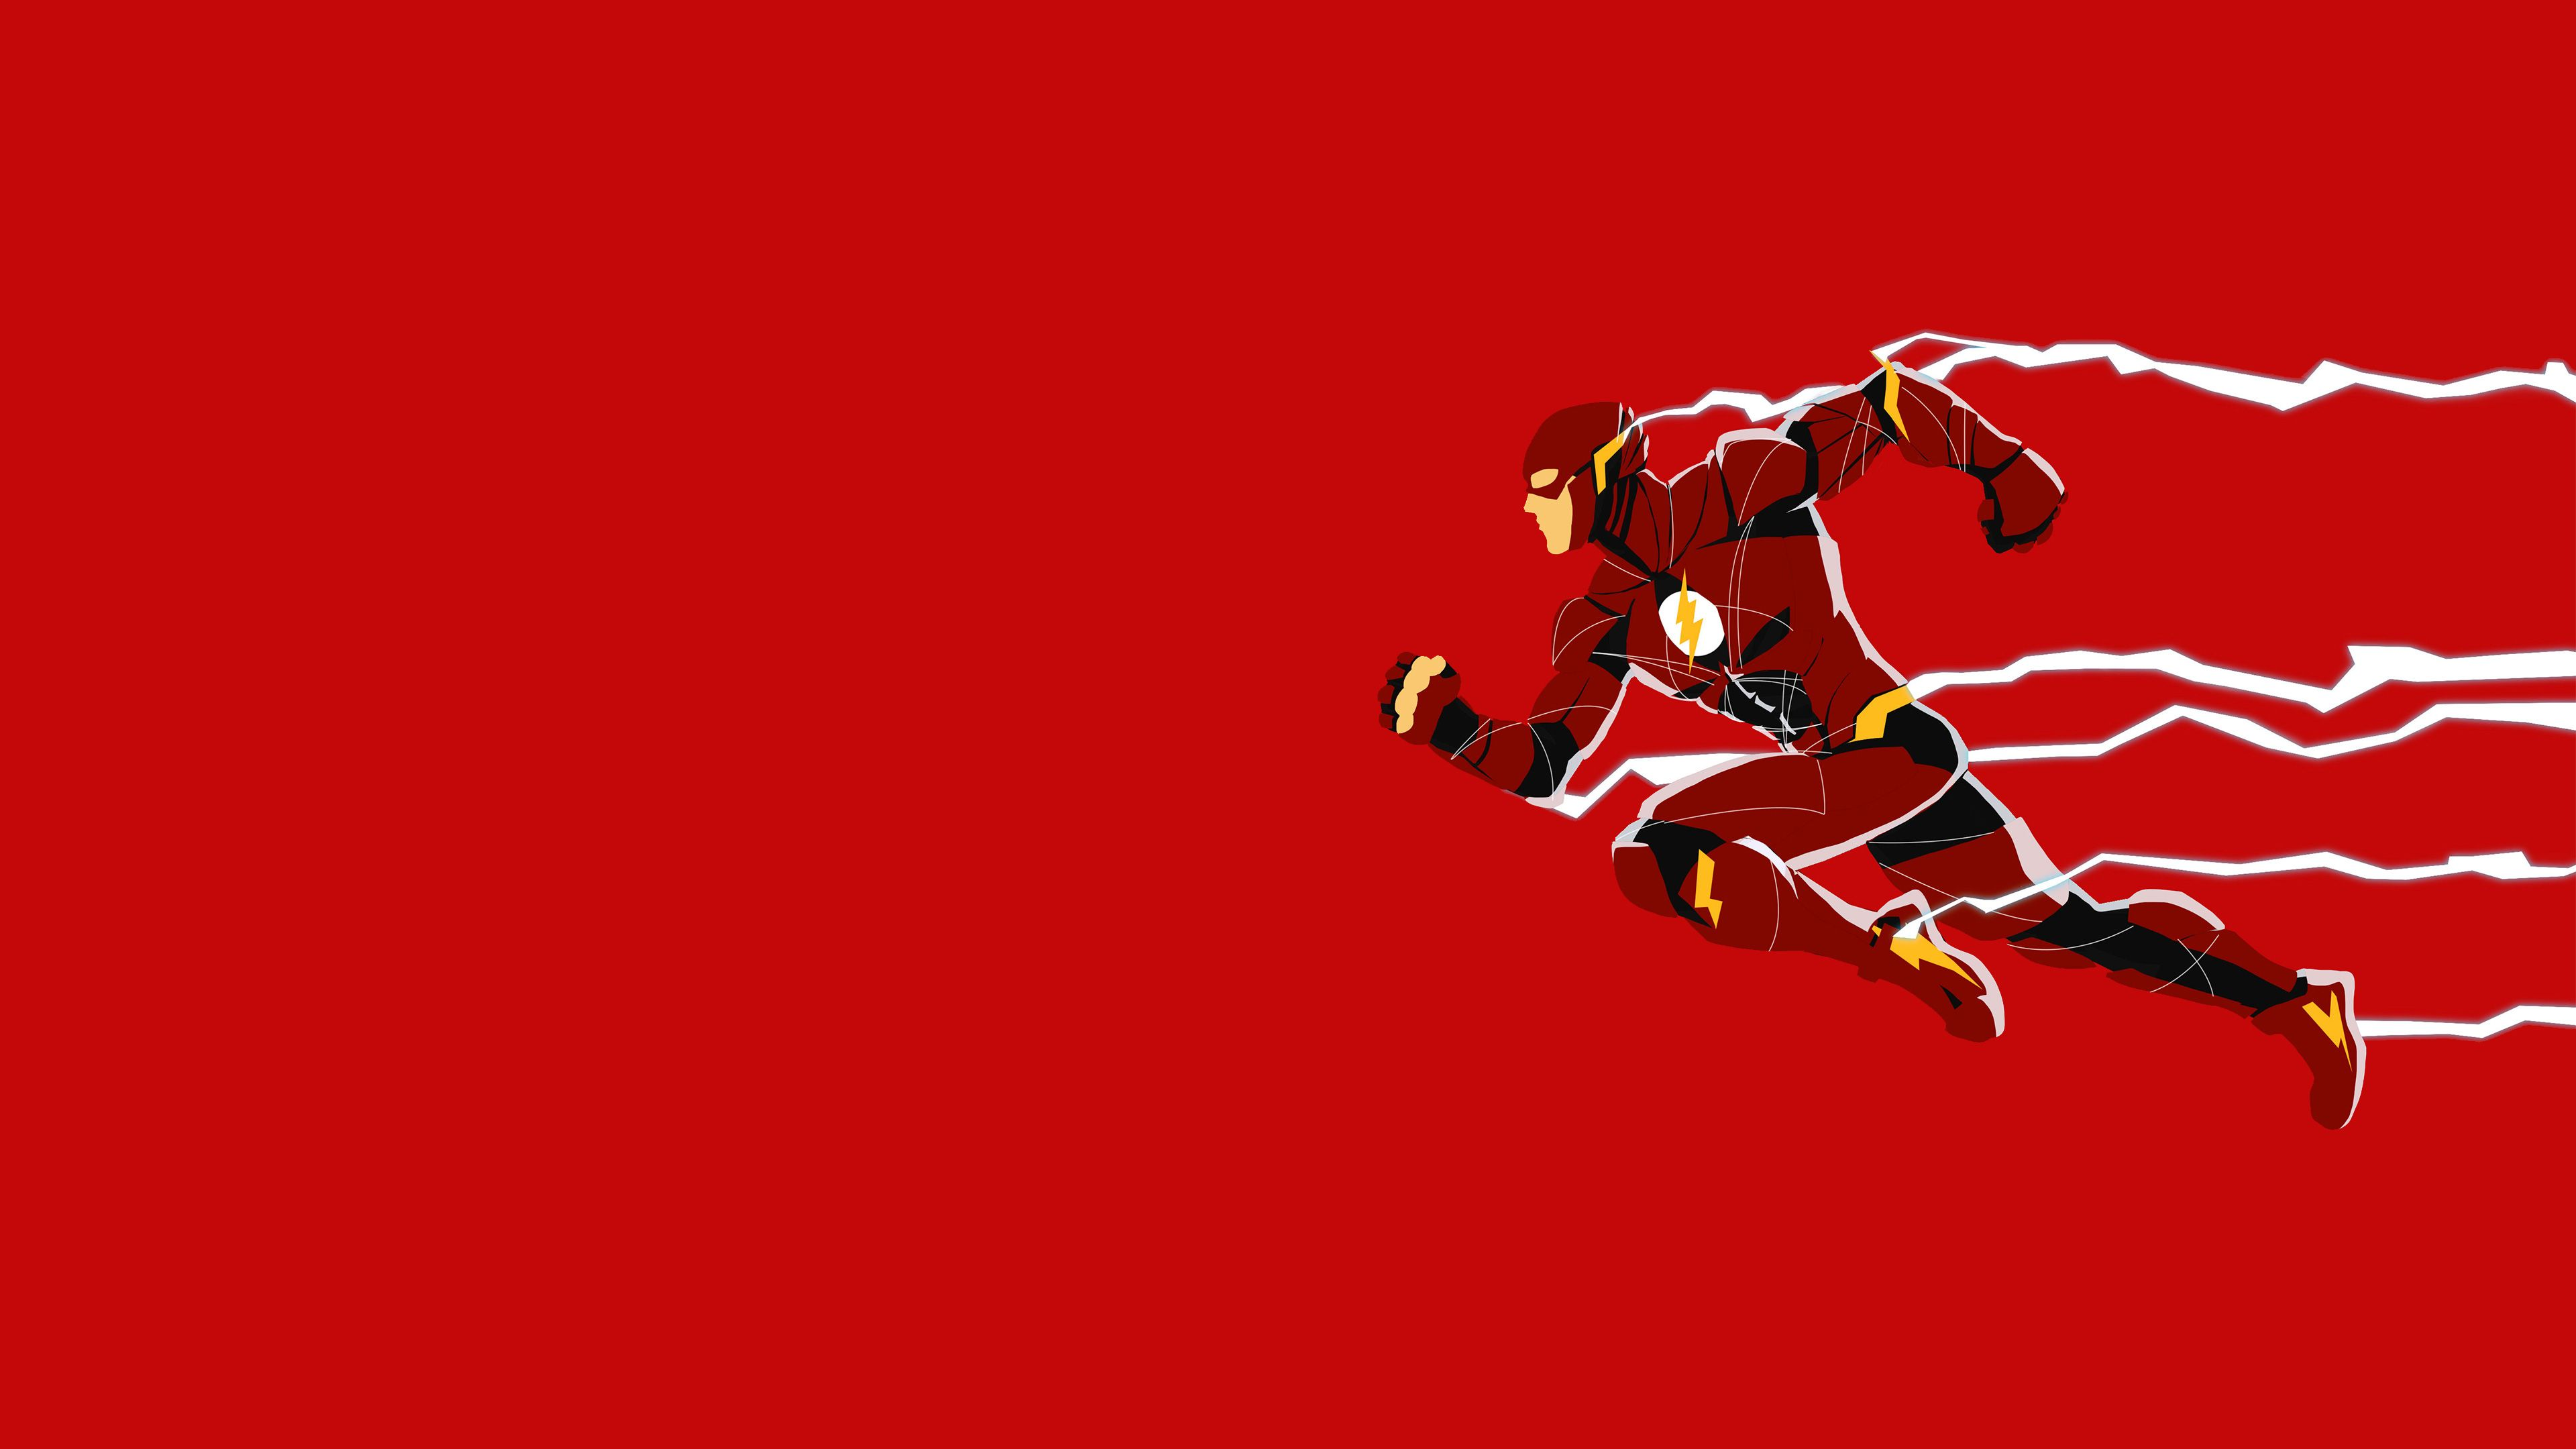 Justice League Flash Minimalism Superheroes Wallpapers Minimalism Wallpapers Justice League Wallpapers Hd Flash Wallpaper Art Wallpaper Justice League Flash